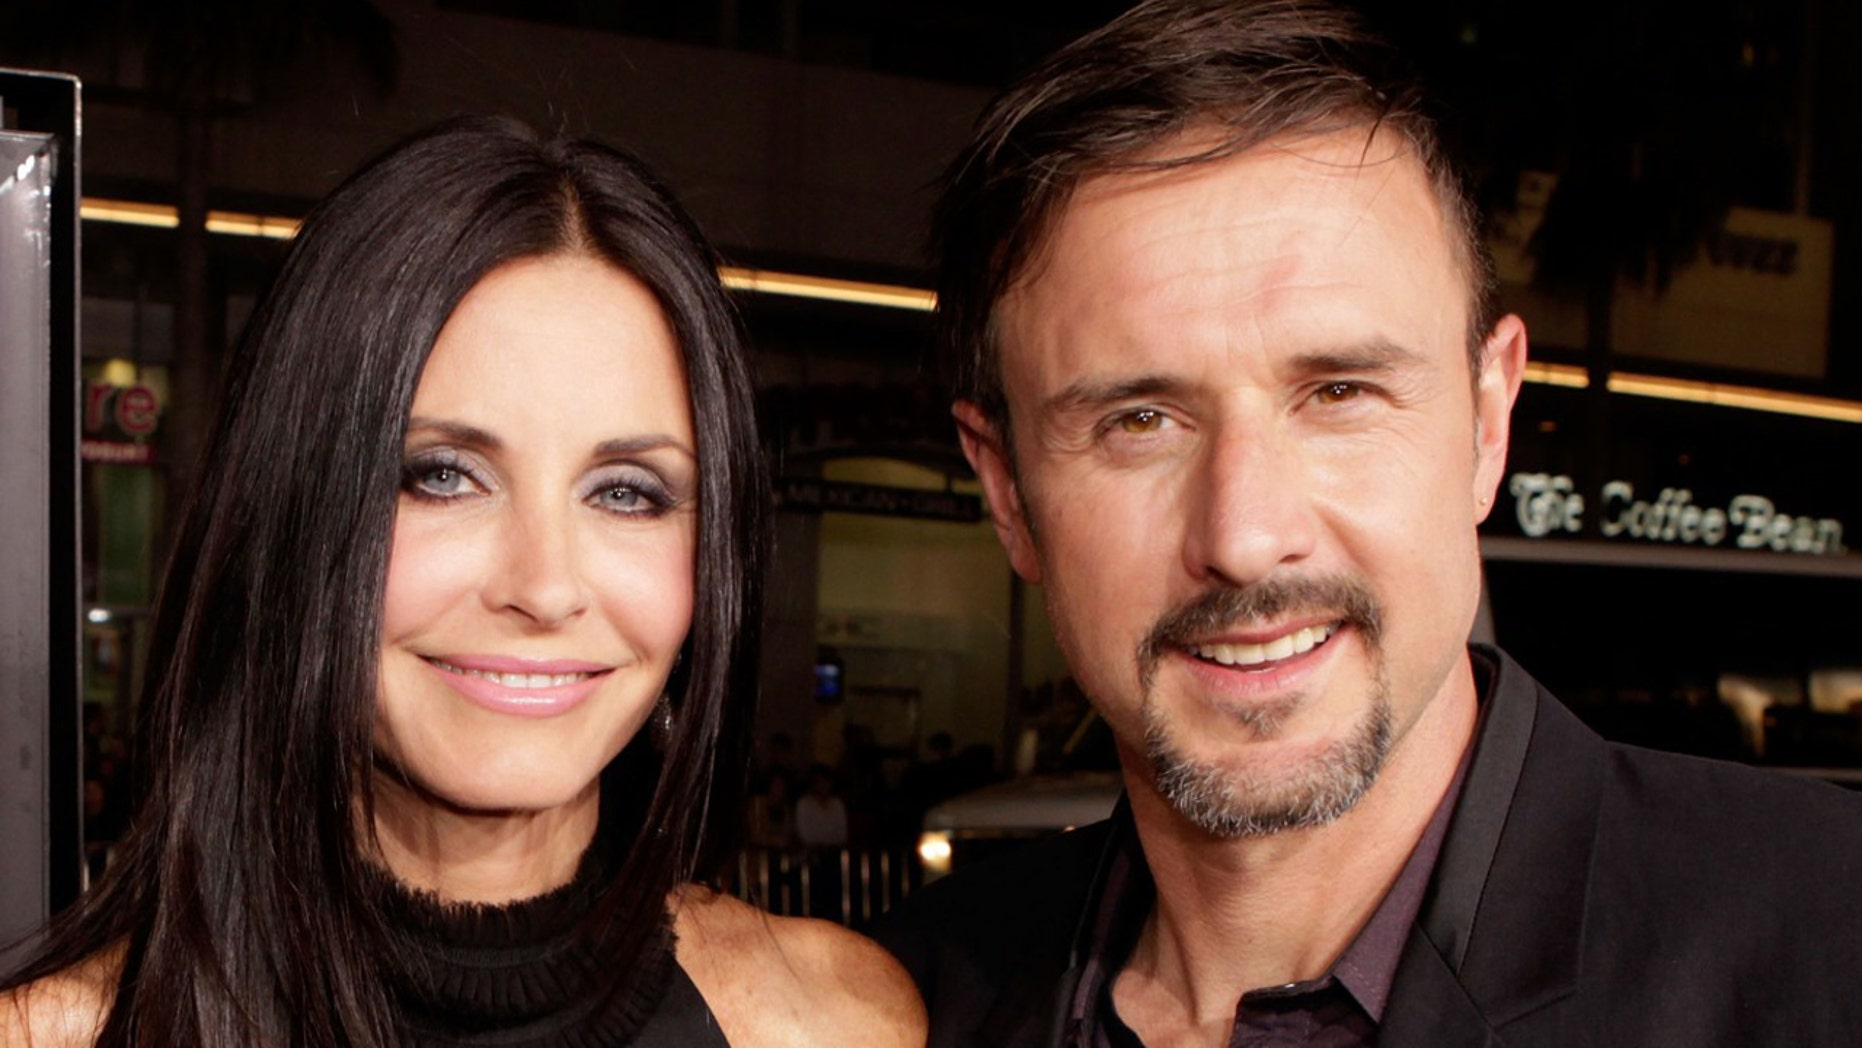 Courteney Cox and David Arquette share photo of their grown up daughter Coco on Instagram.